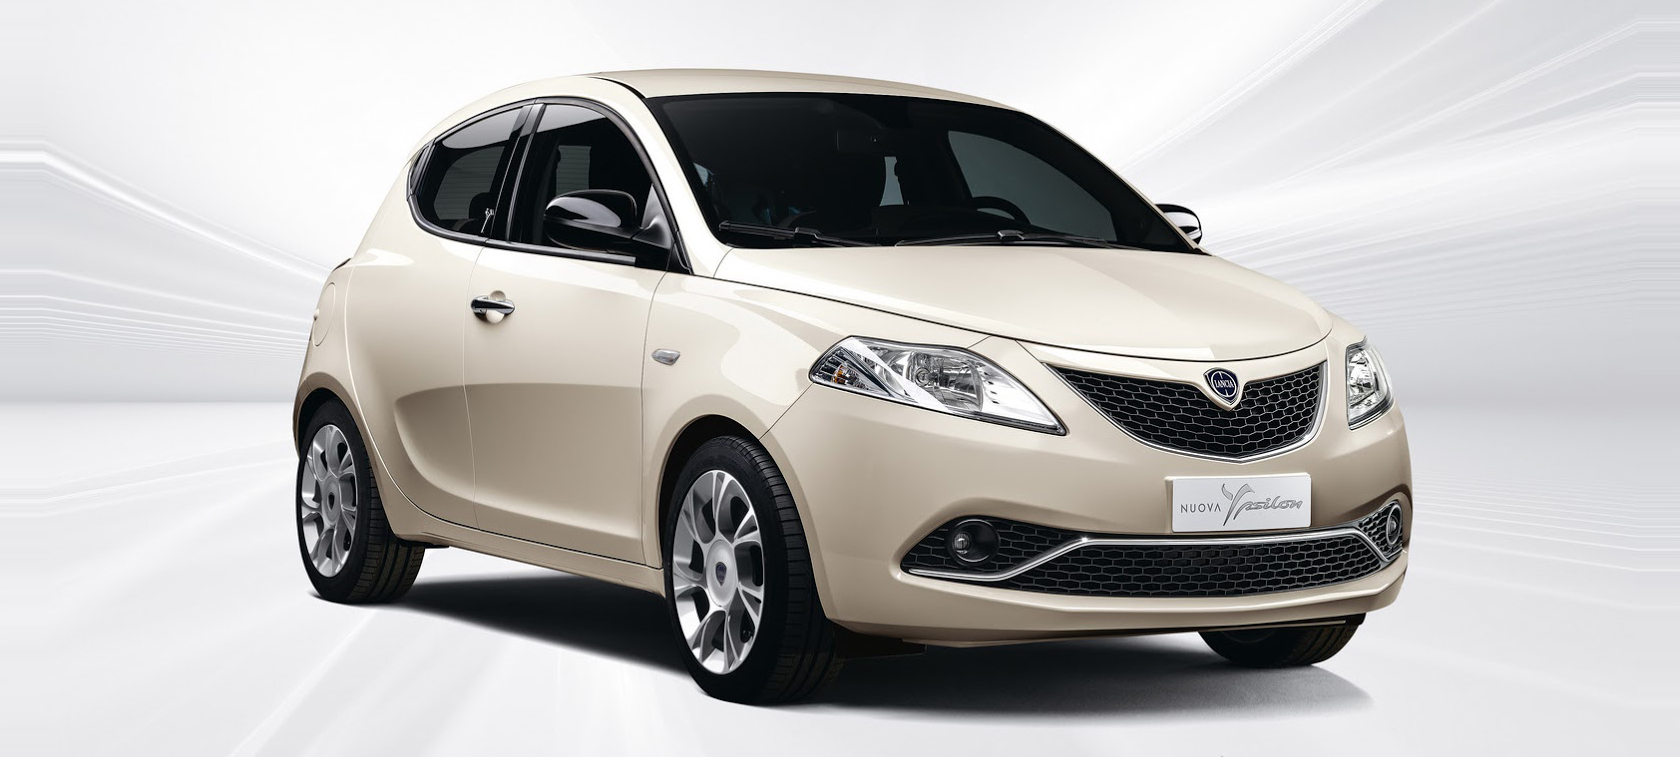 Lancia Ypsilon - LPG and CNG on botox